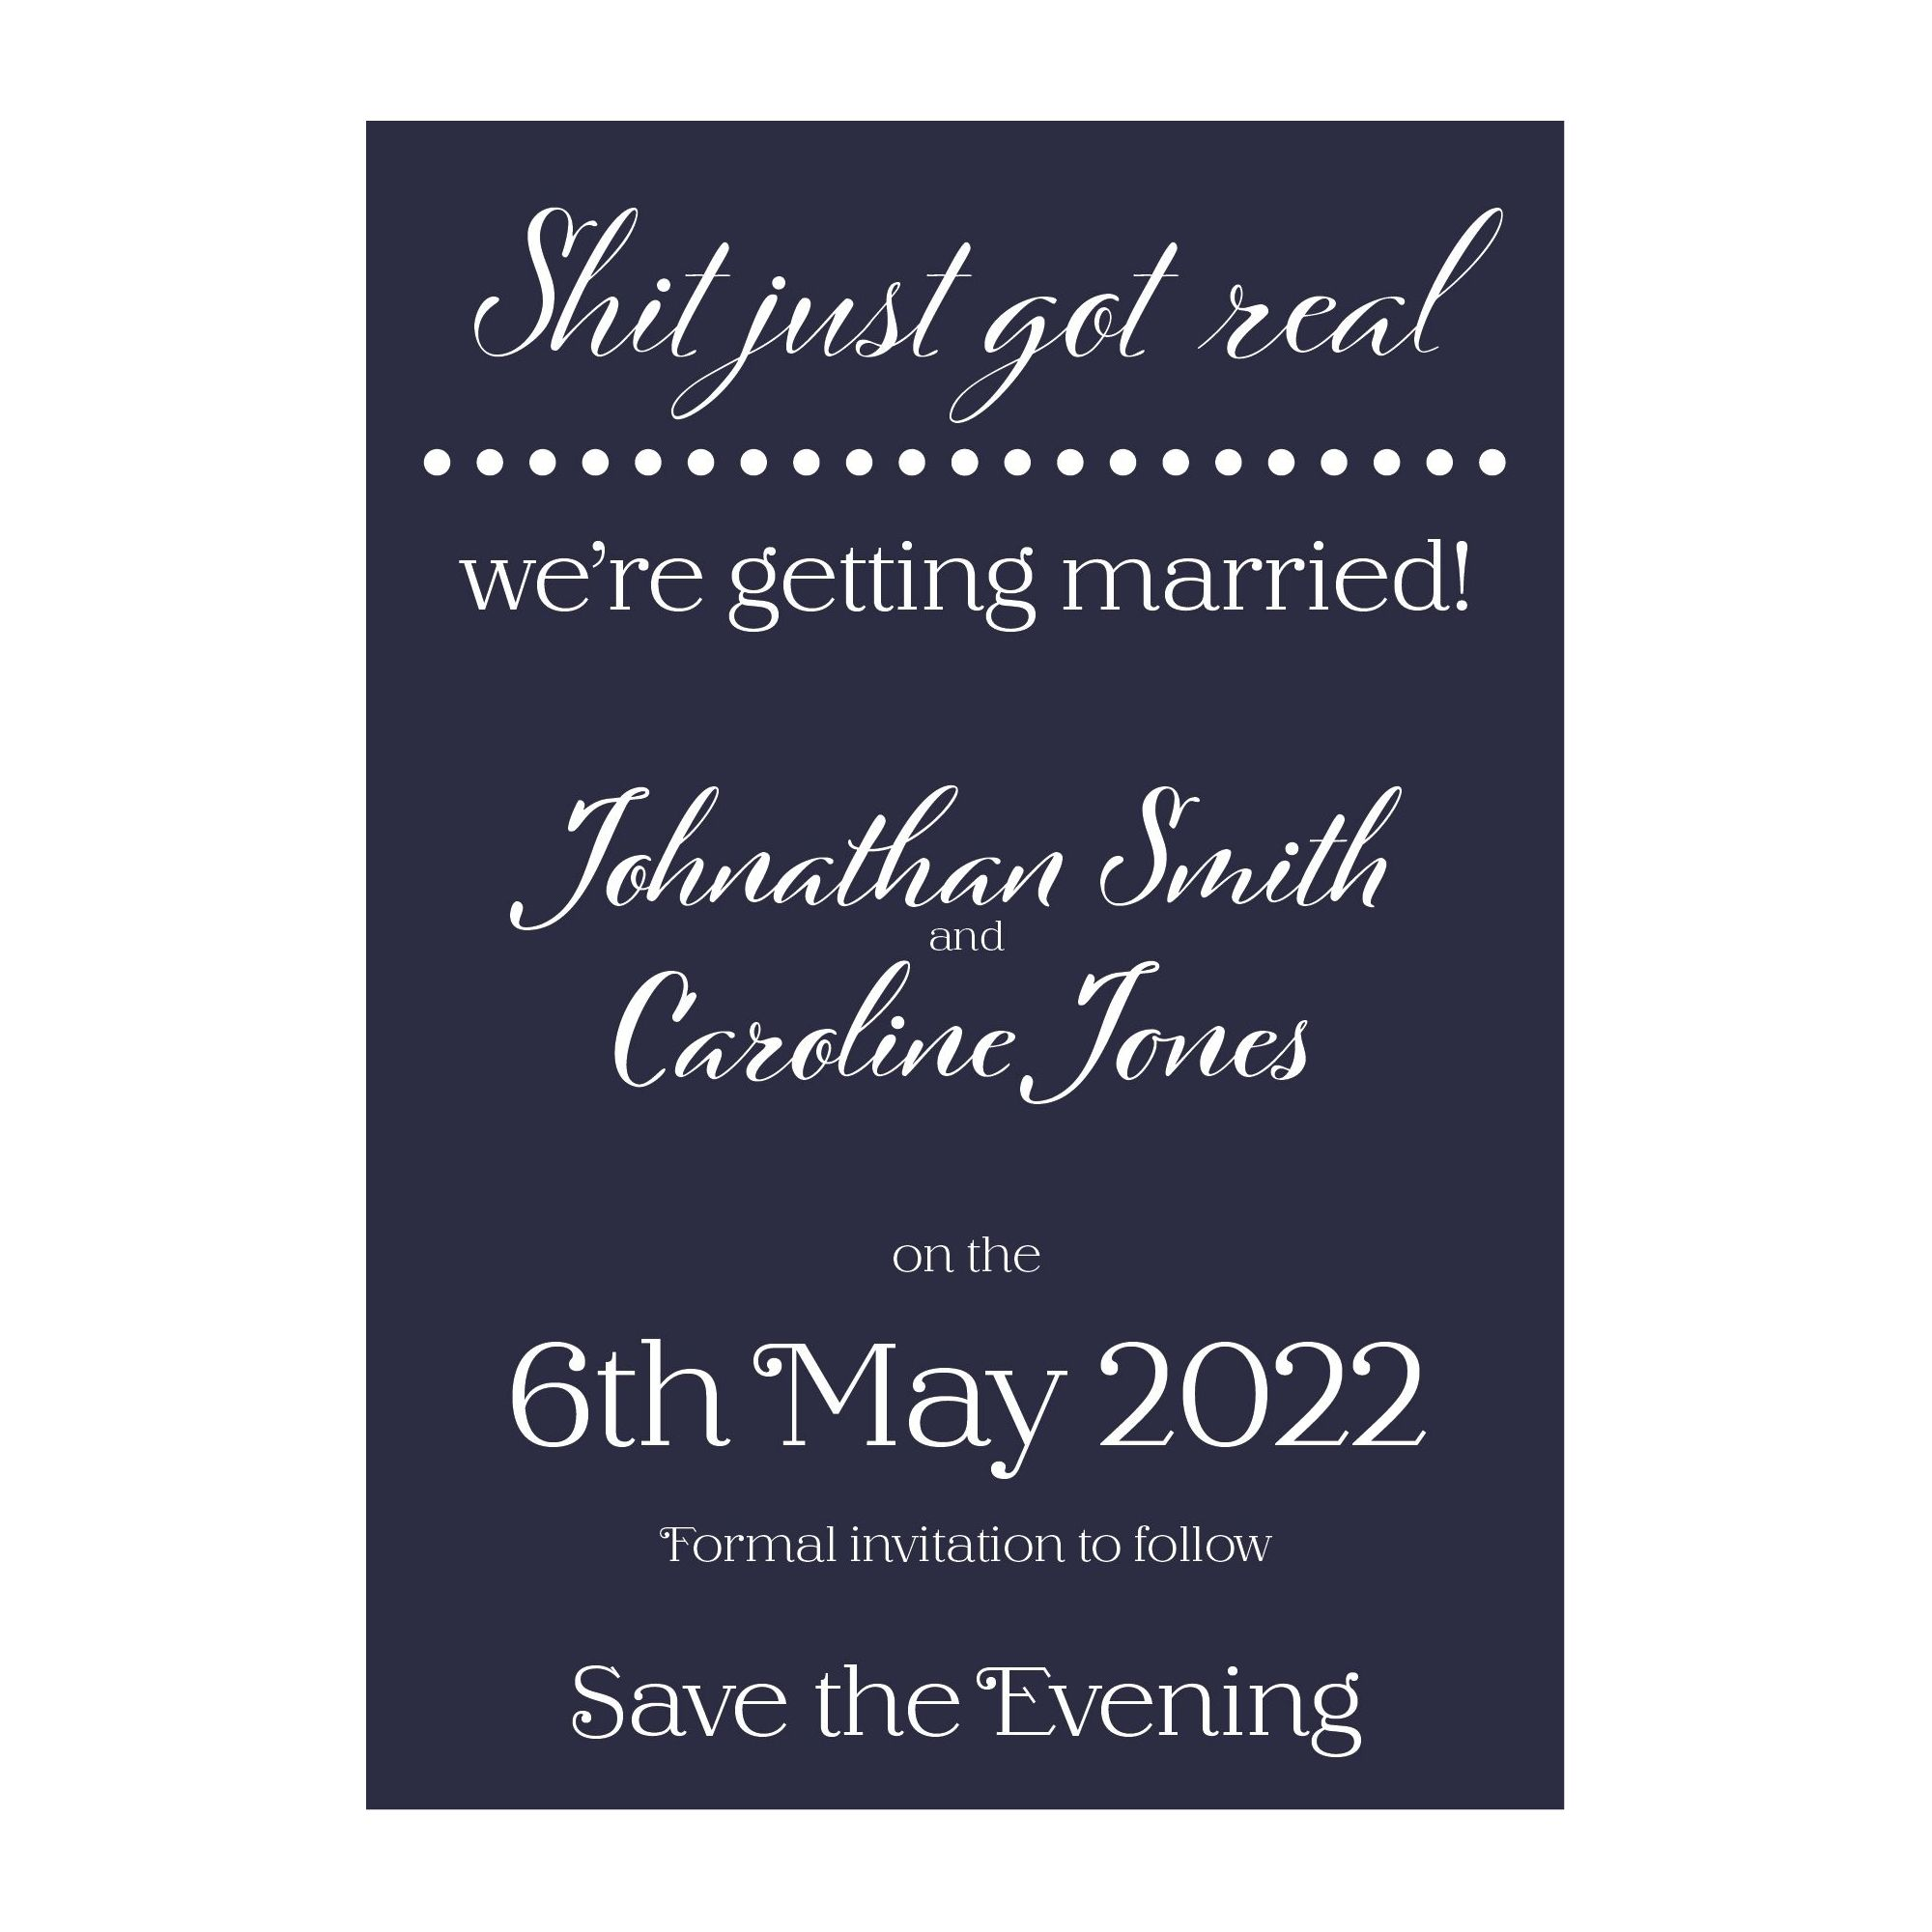 Navy Blue with White Ink Funny Shit Just Got Real Save the Evening Cards